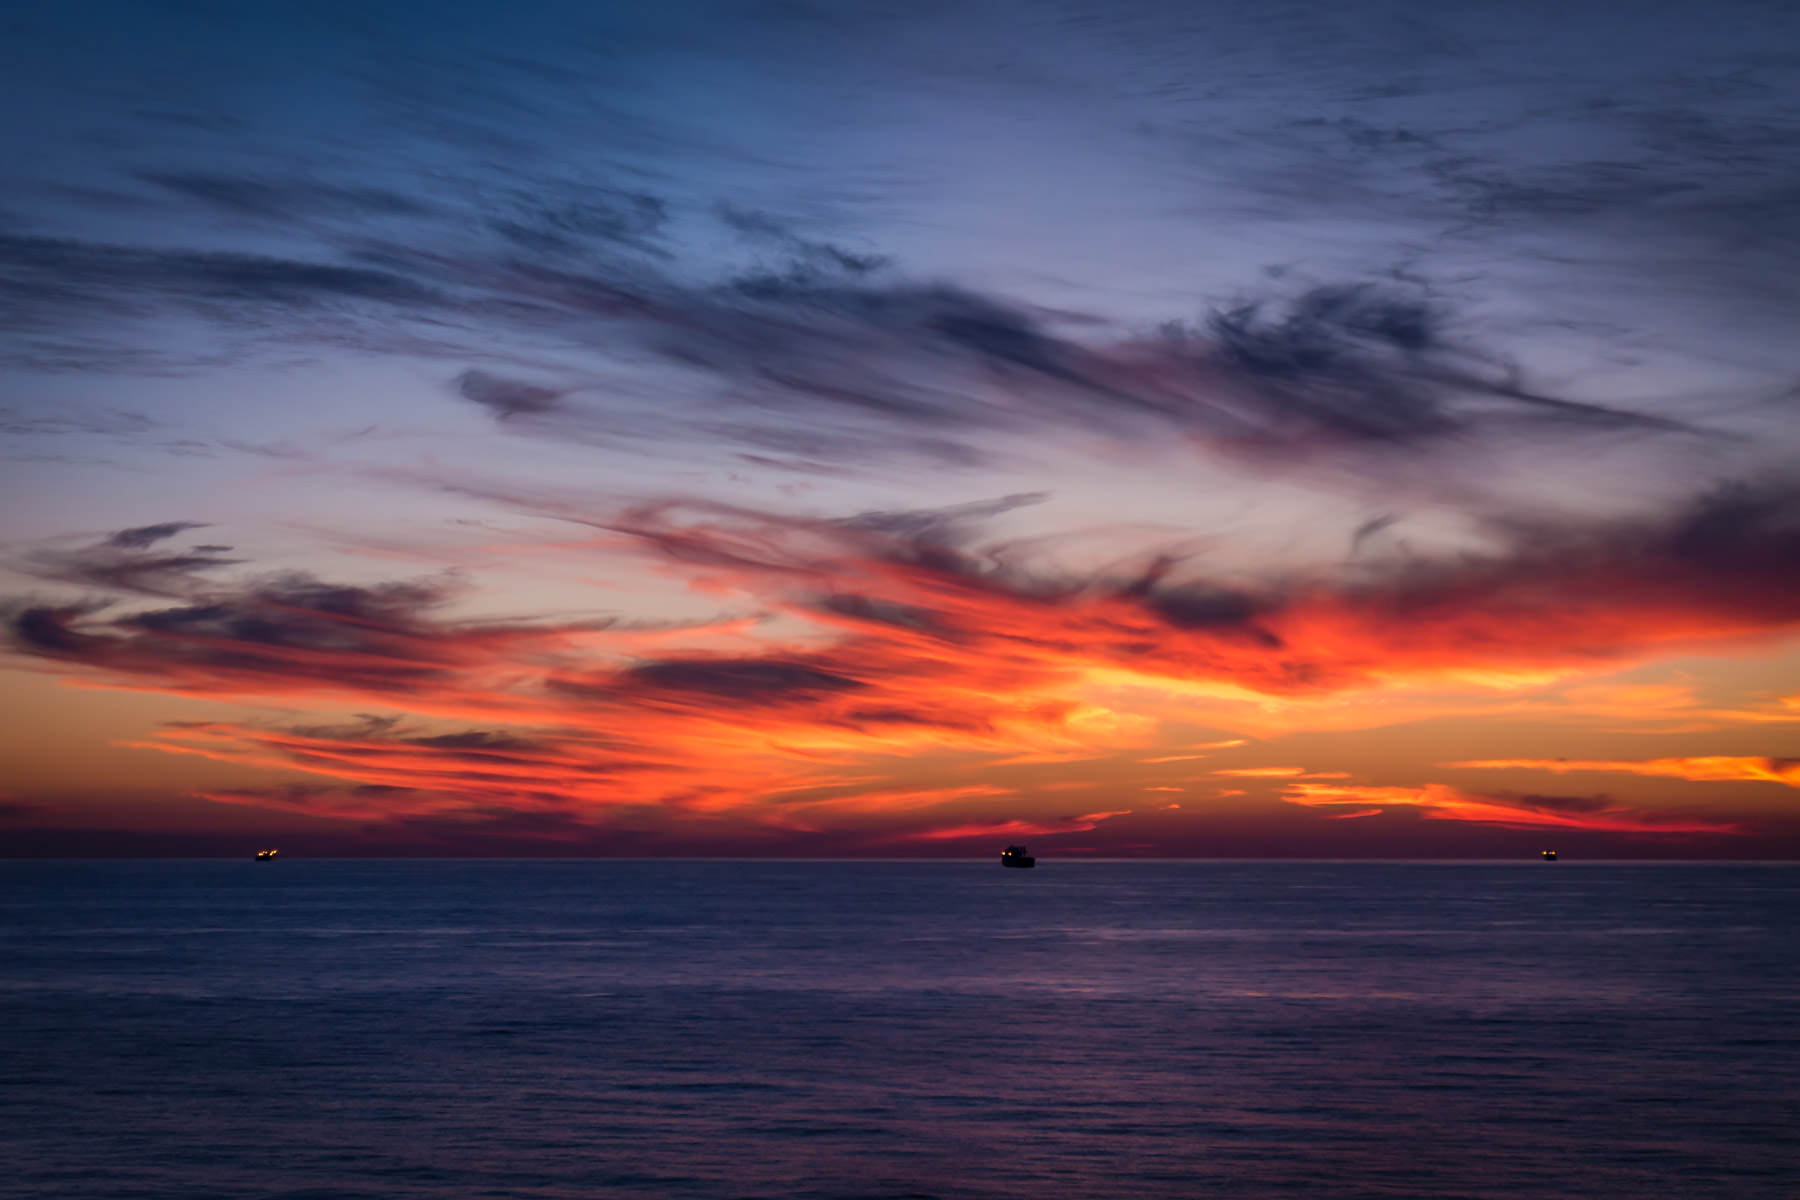 The sun rises on the Gulf of Mexico, just off the coast of Galveston, Texas.